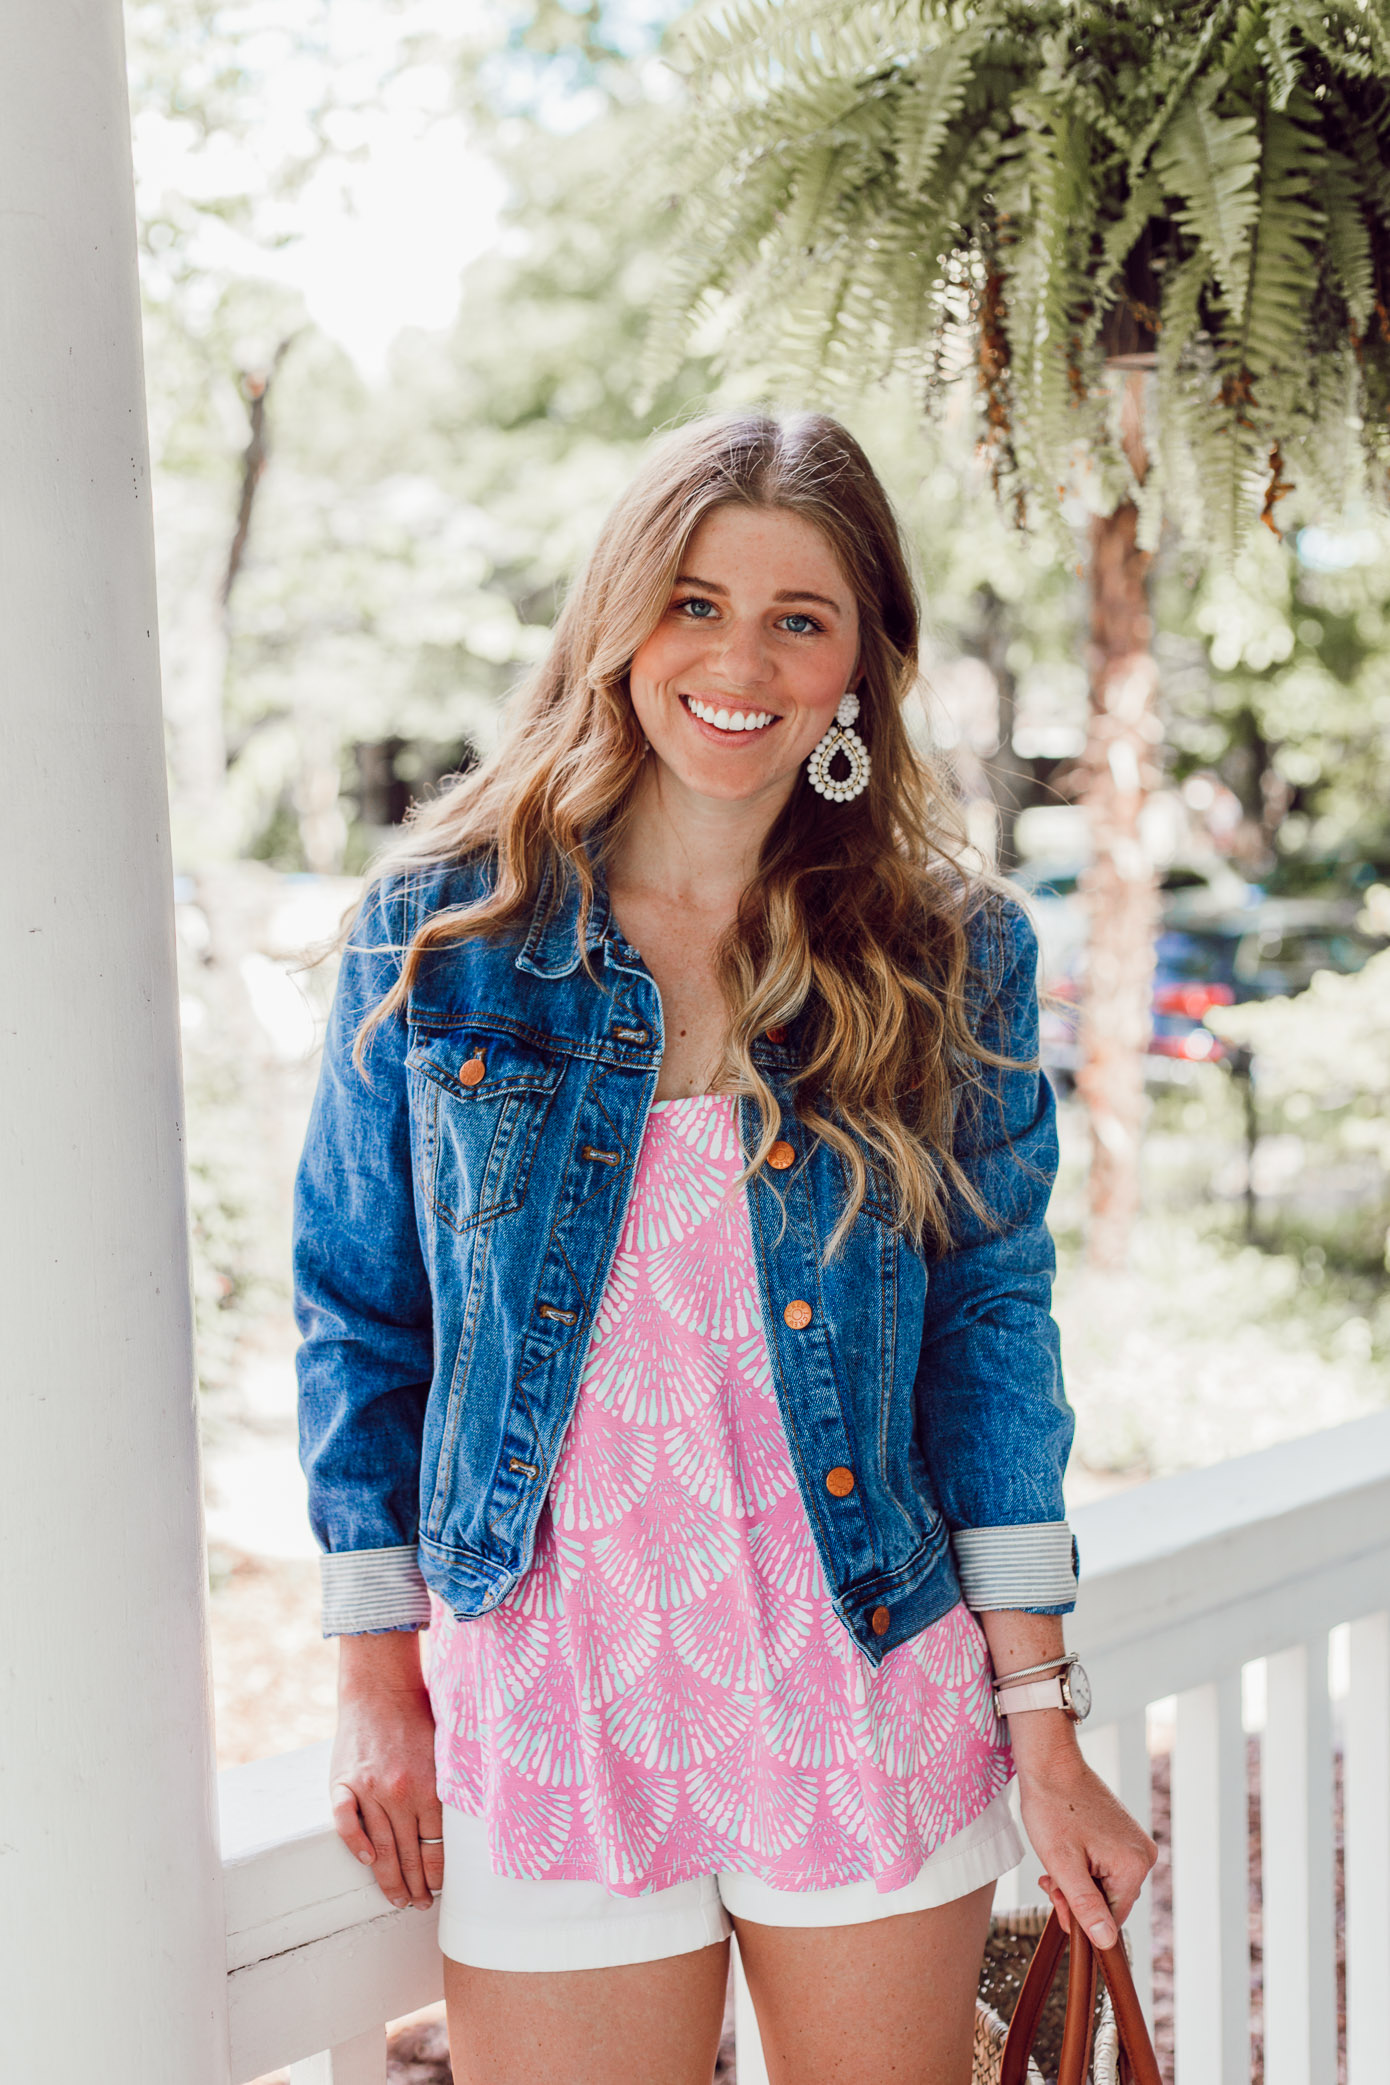 Summer 2018 Bucket List | How to Style a Denim Jacket this Summer | Louella Reese Life & Style Blog